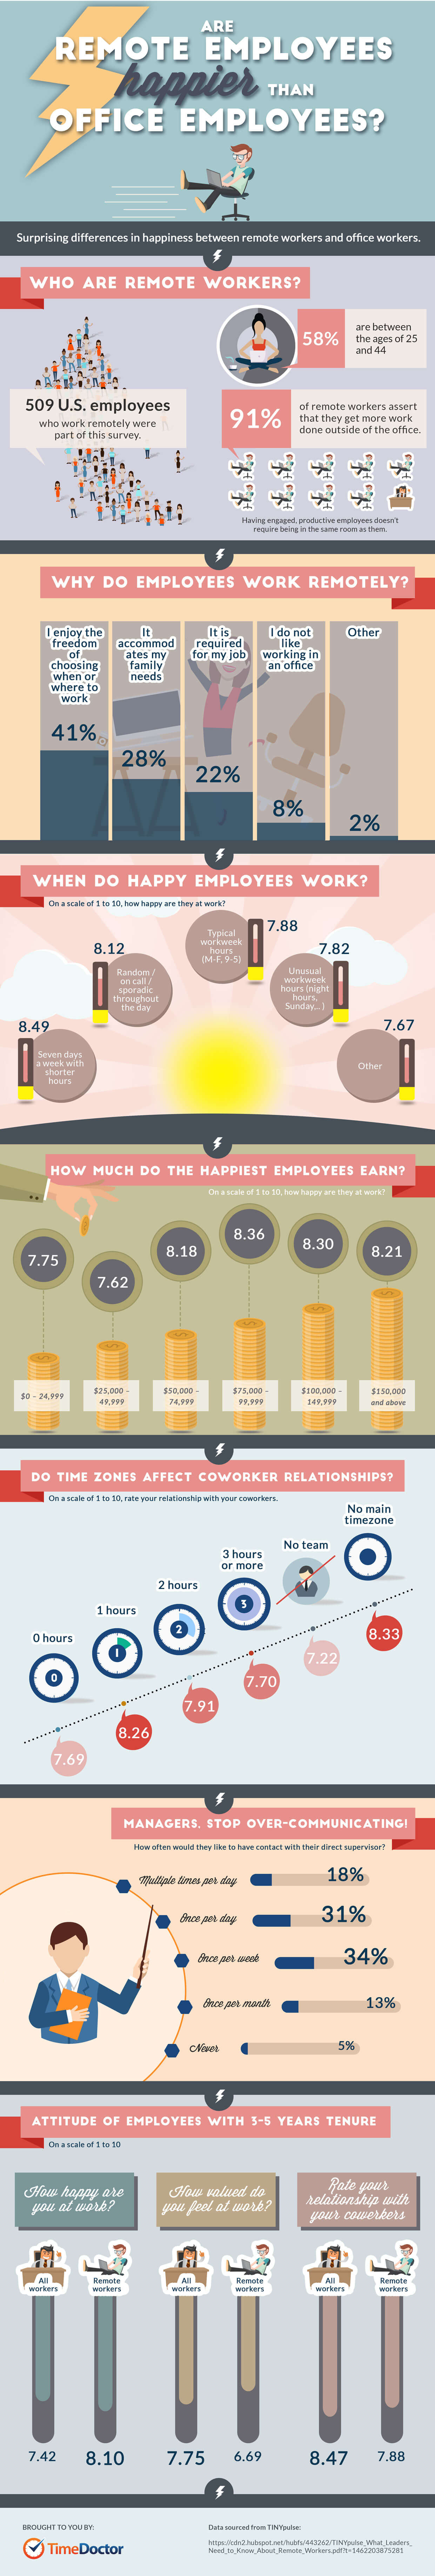 are-remote-employees-happier-than-office-employees-infographic-plaza